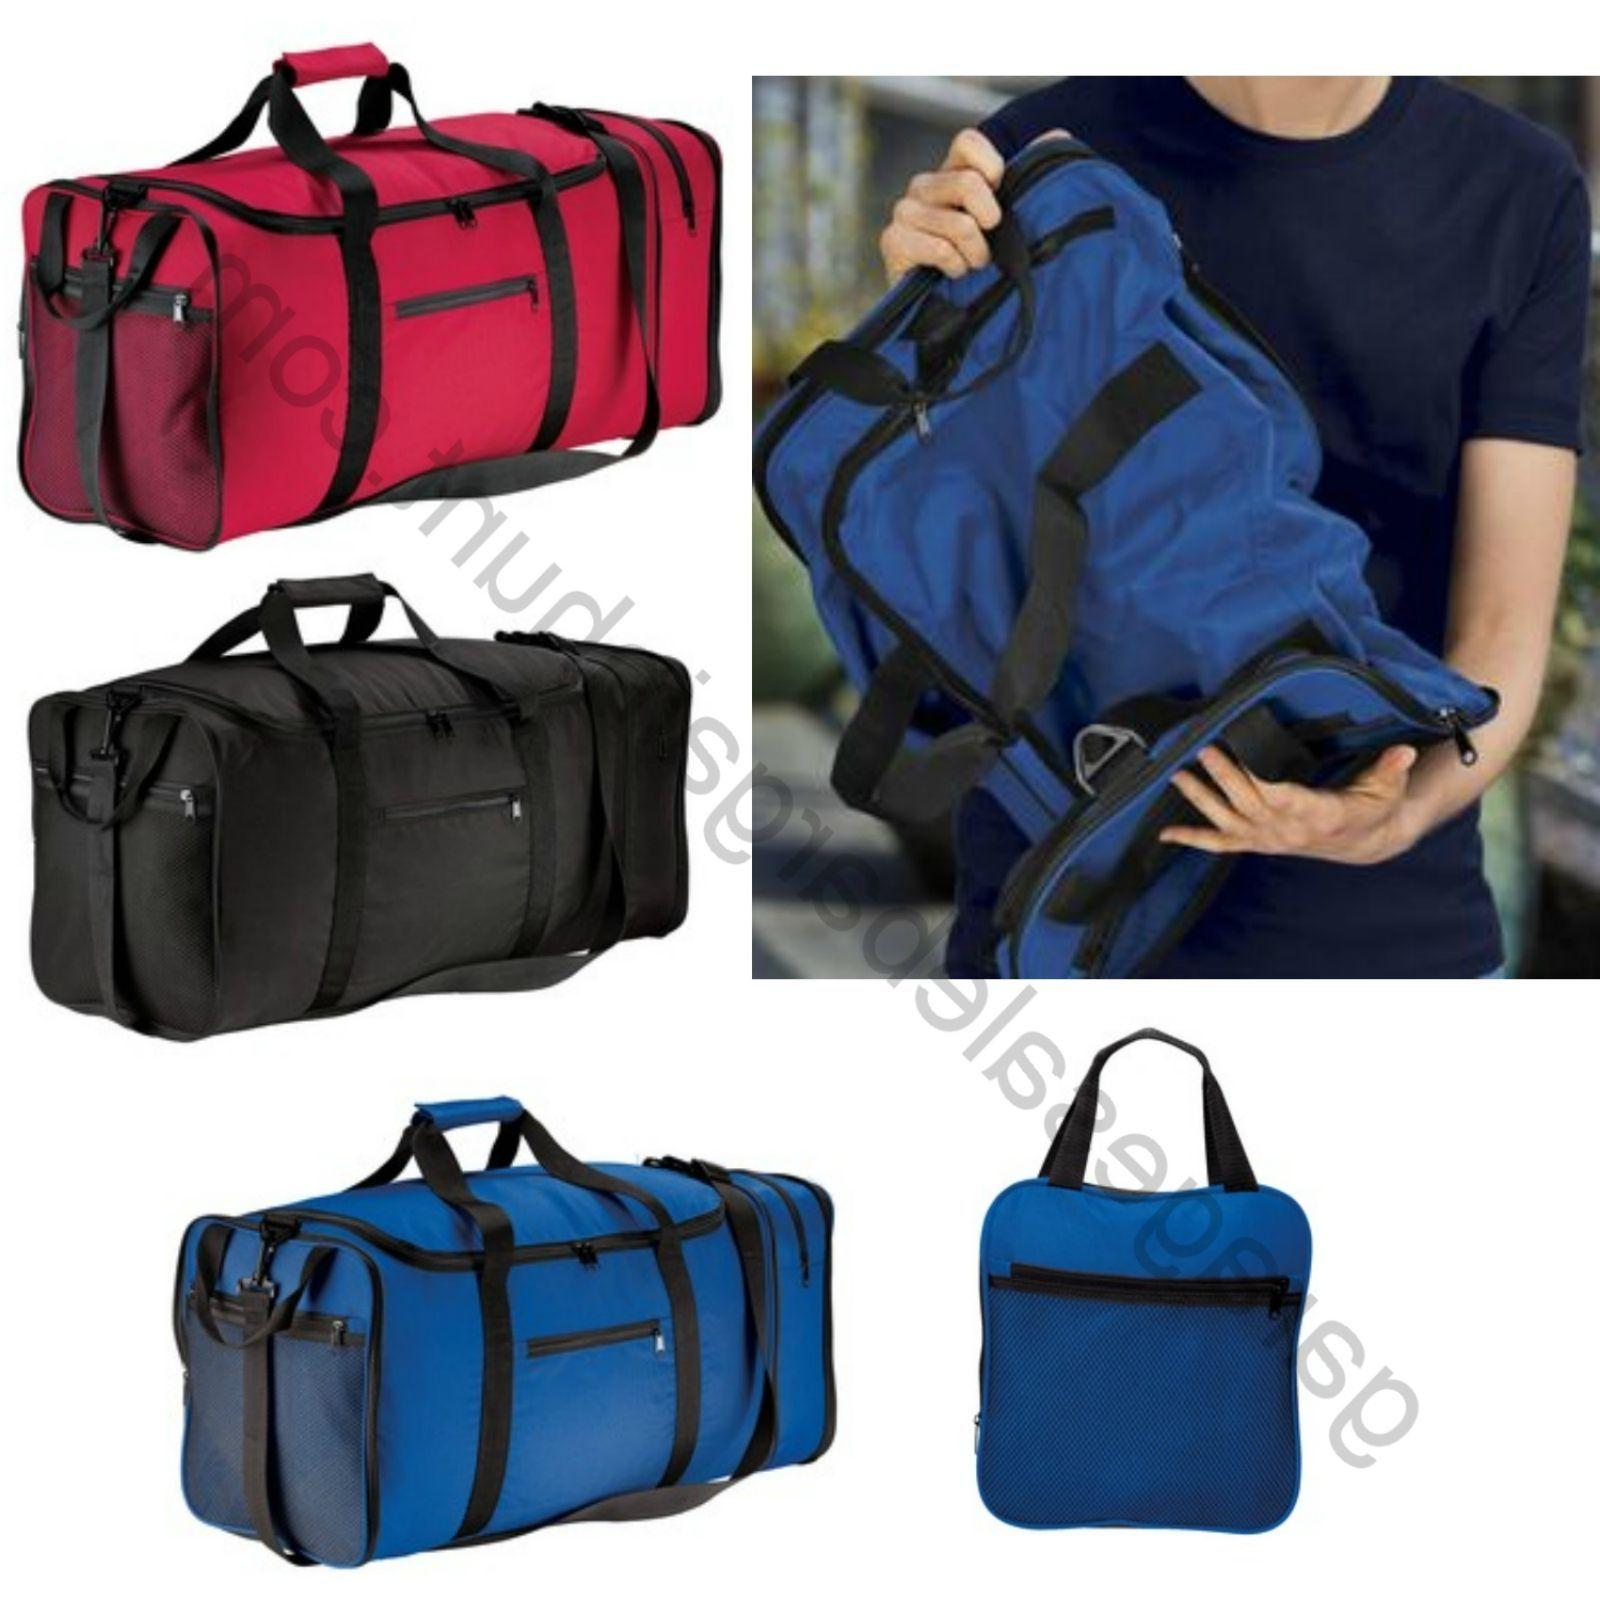 Extra Packable Duffle Bag Travel Duffle